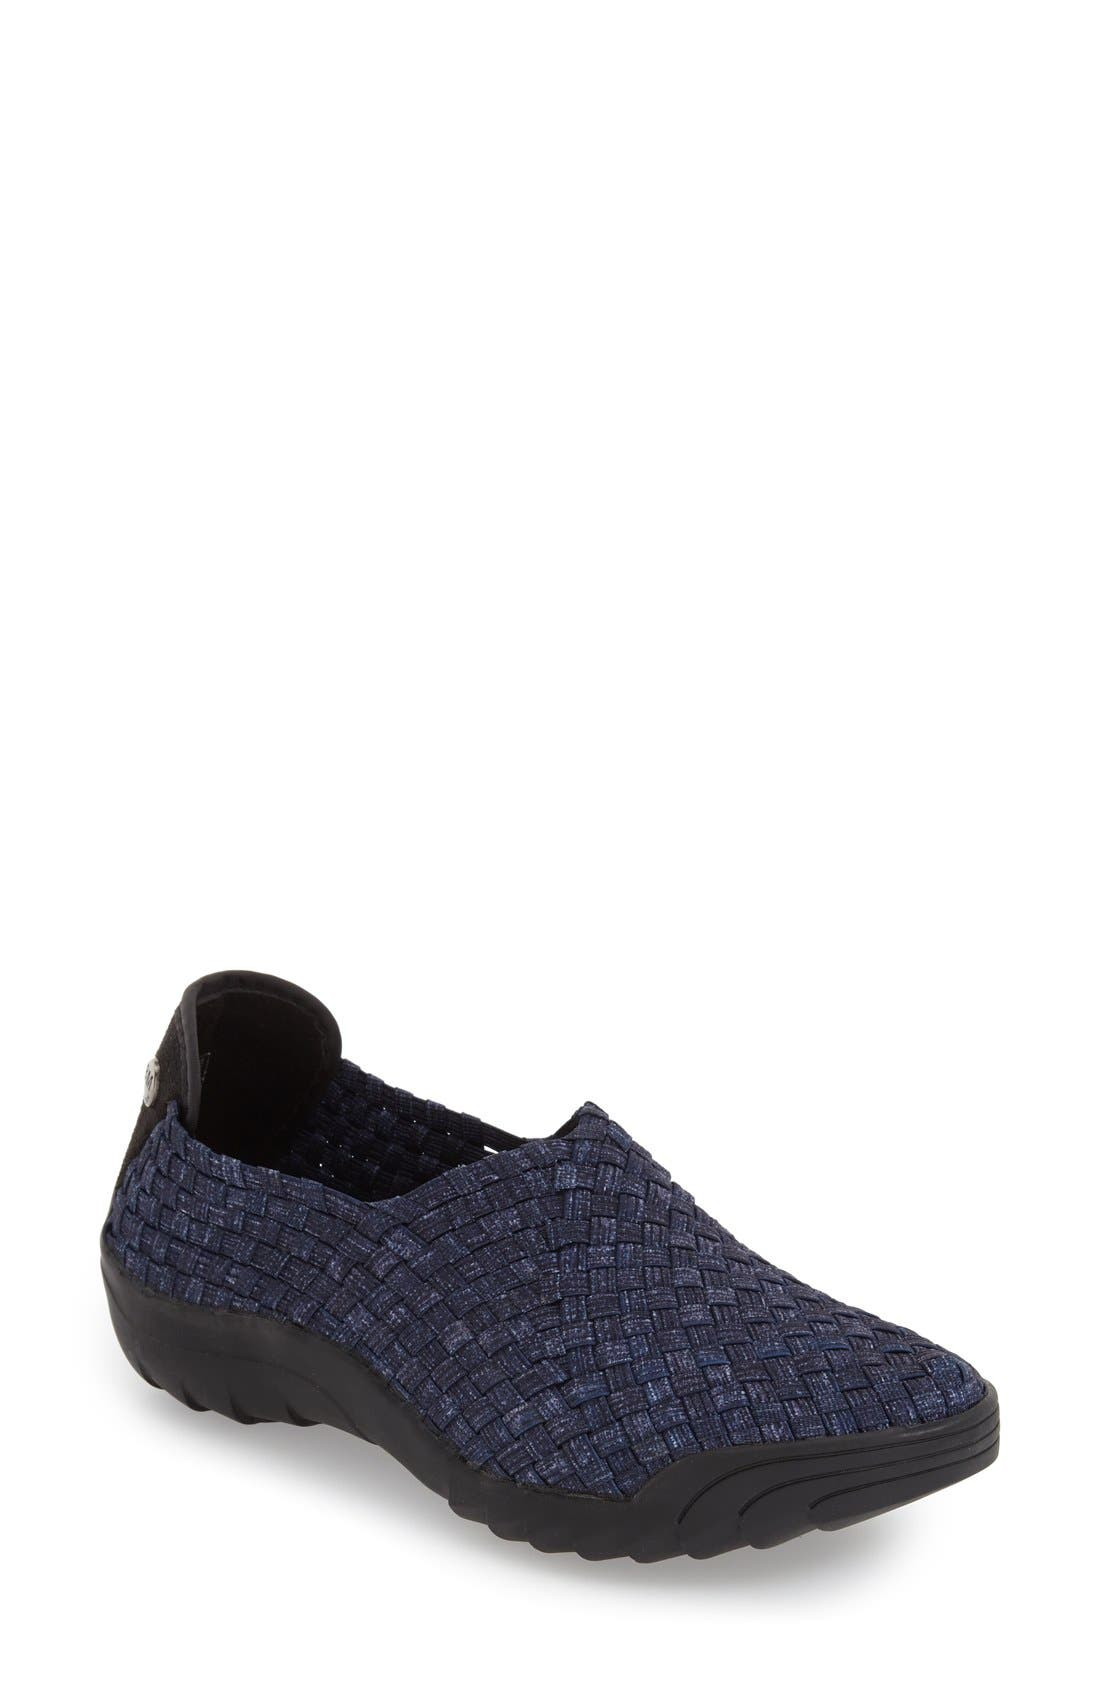 'Rigged Jim' Slip-On Sneaker,                         Main,                         color, Jeans Fabric